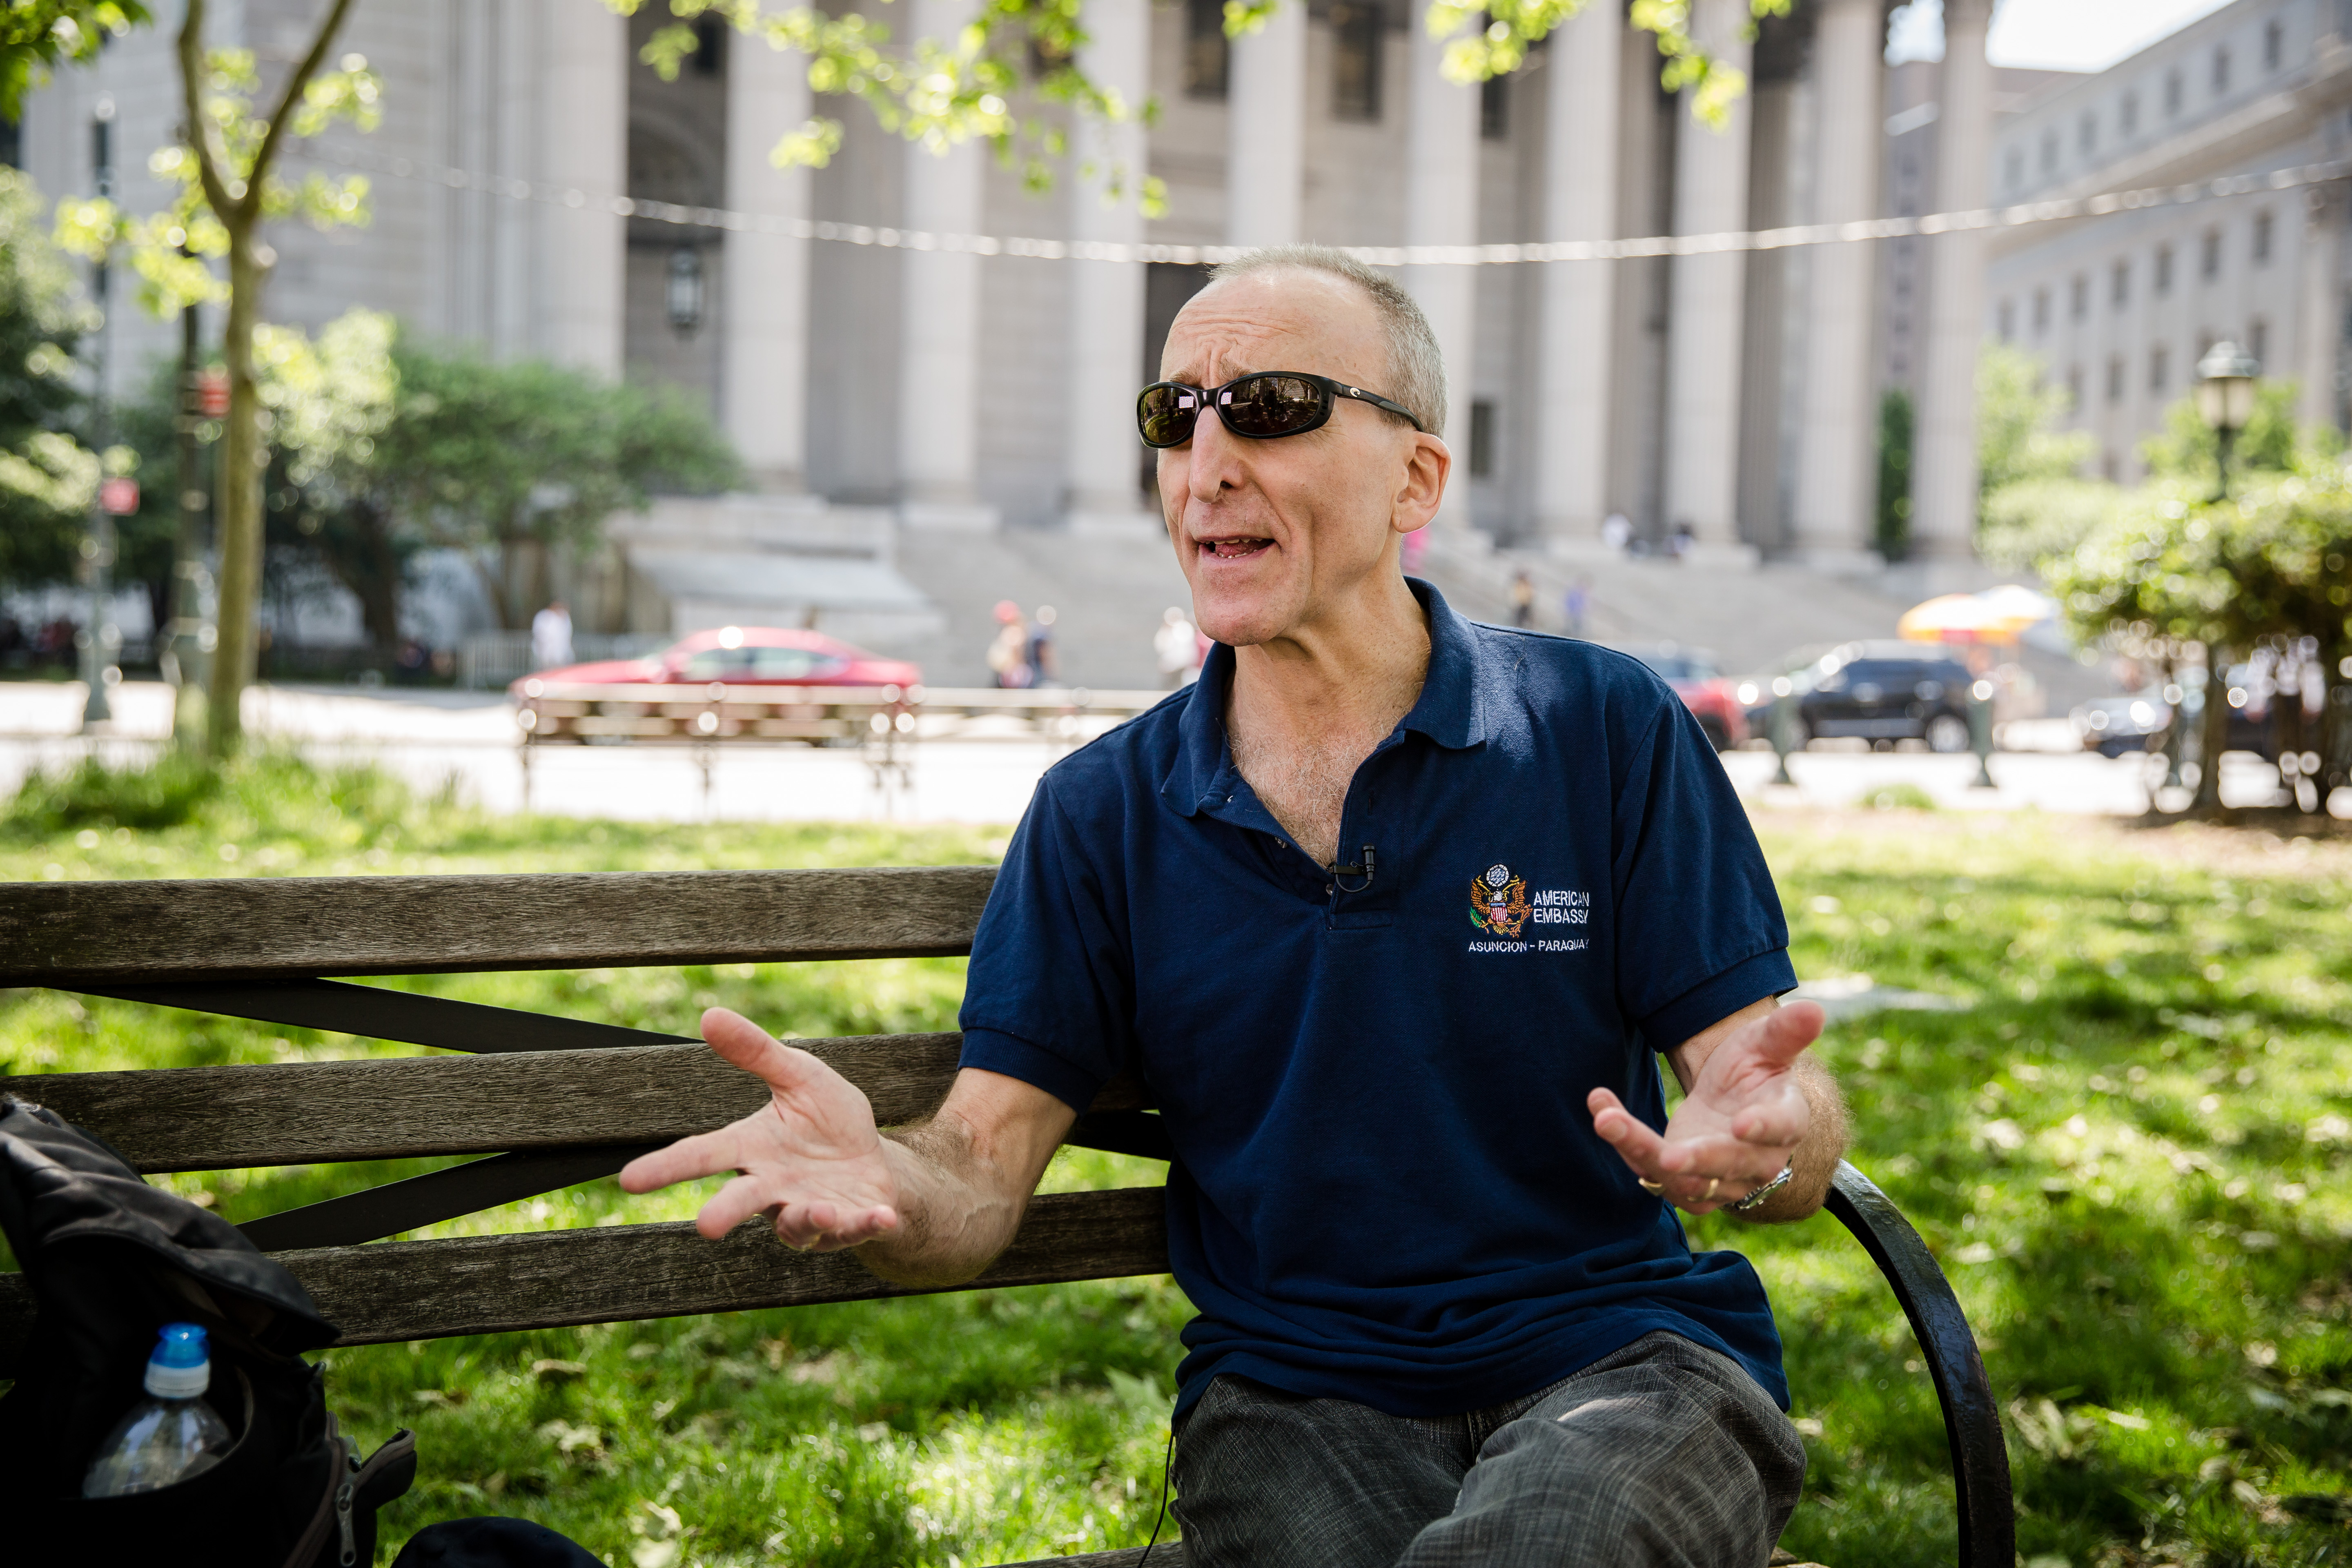 Retired FBI agent Marc Ruskin at the Thomas Paine Park in New York on May 19, 2017. (Benjamin Chasteen/The Epoch Times)